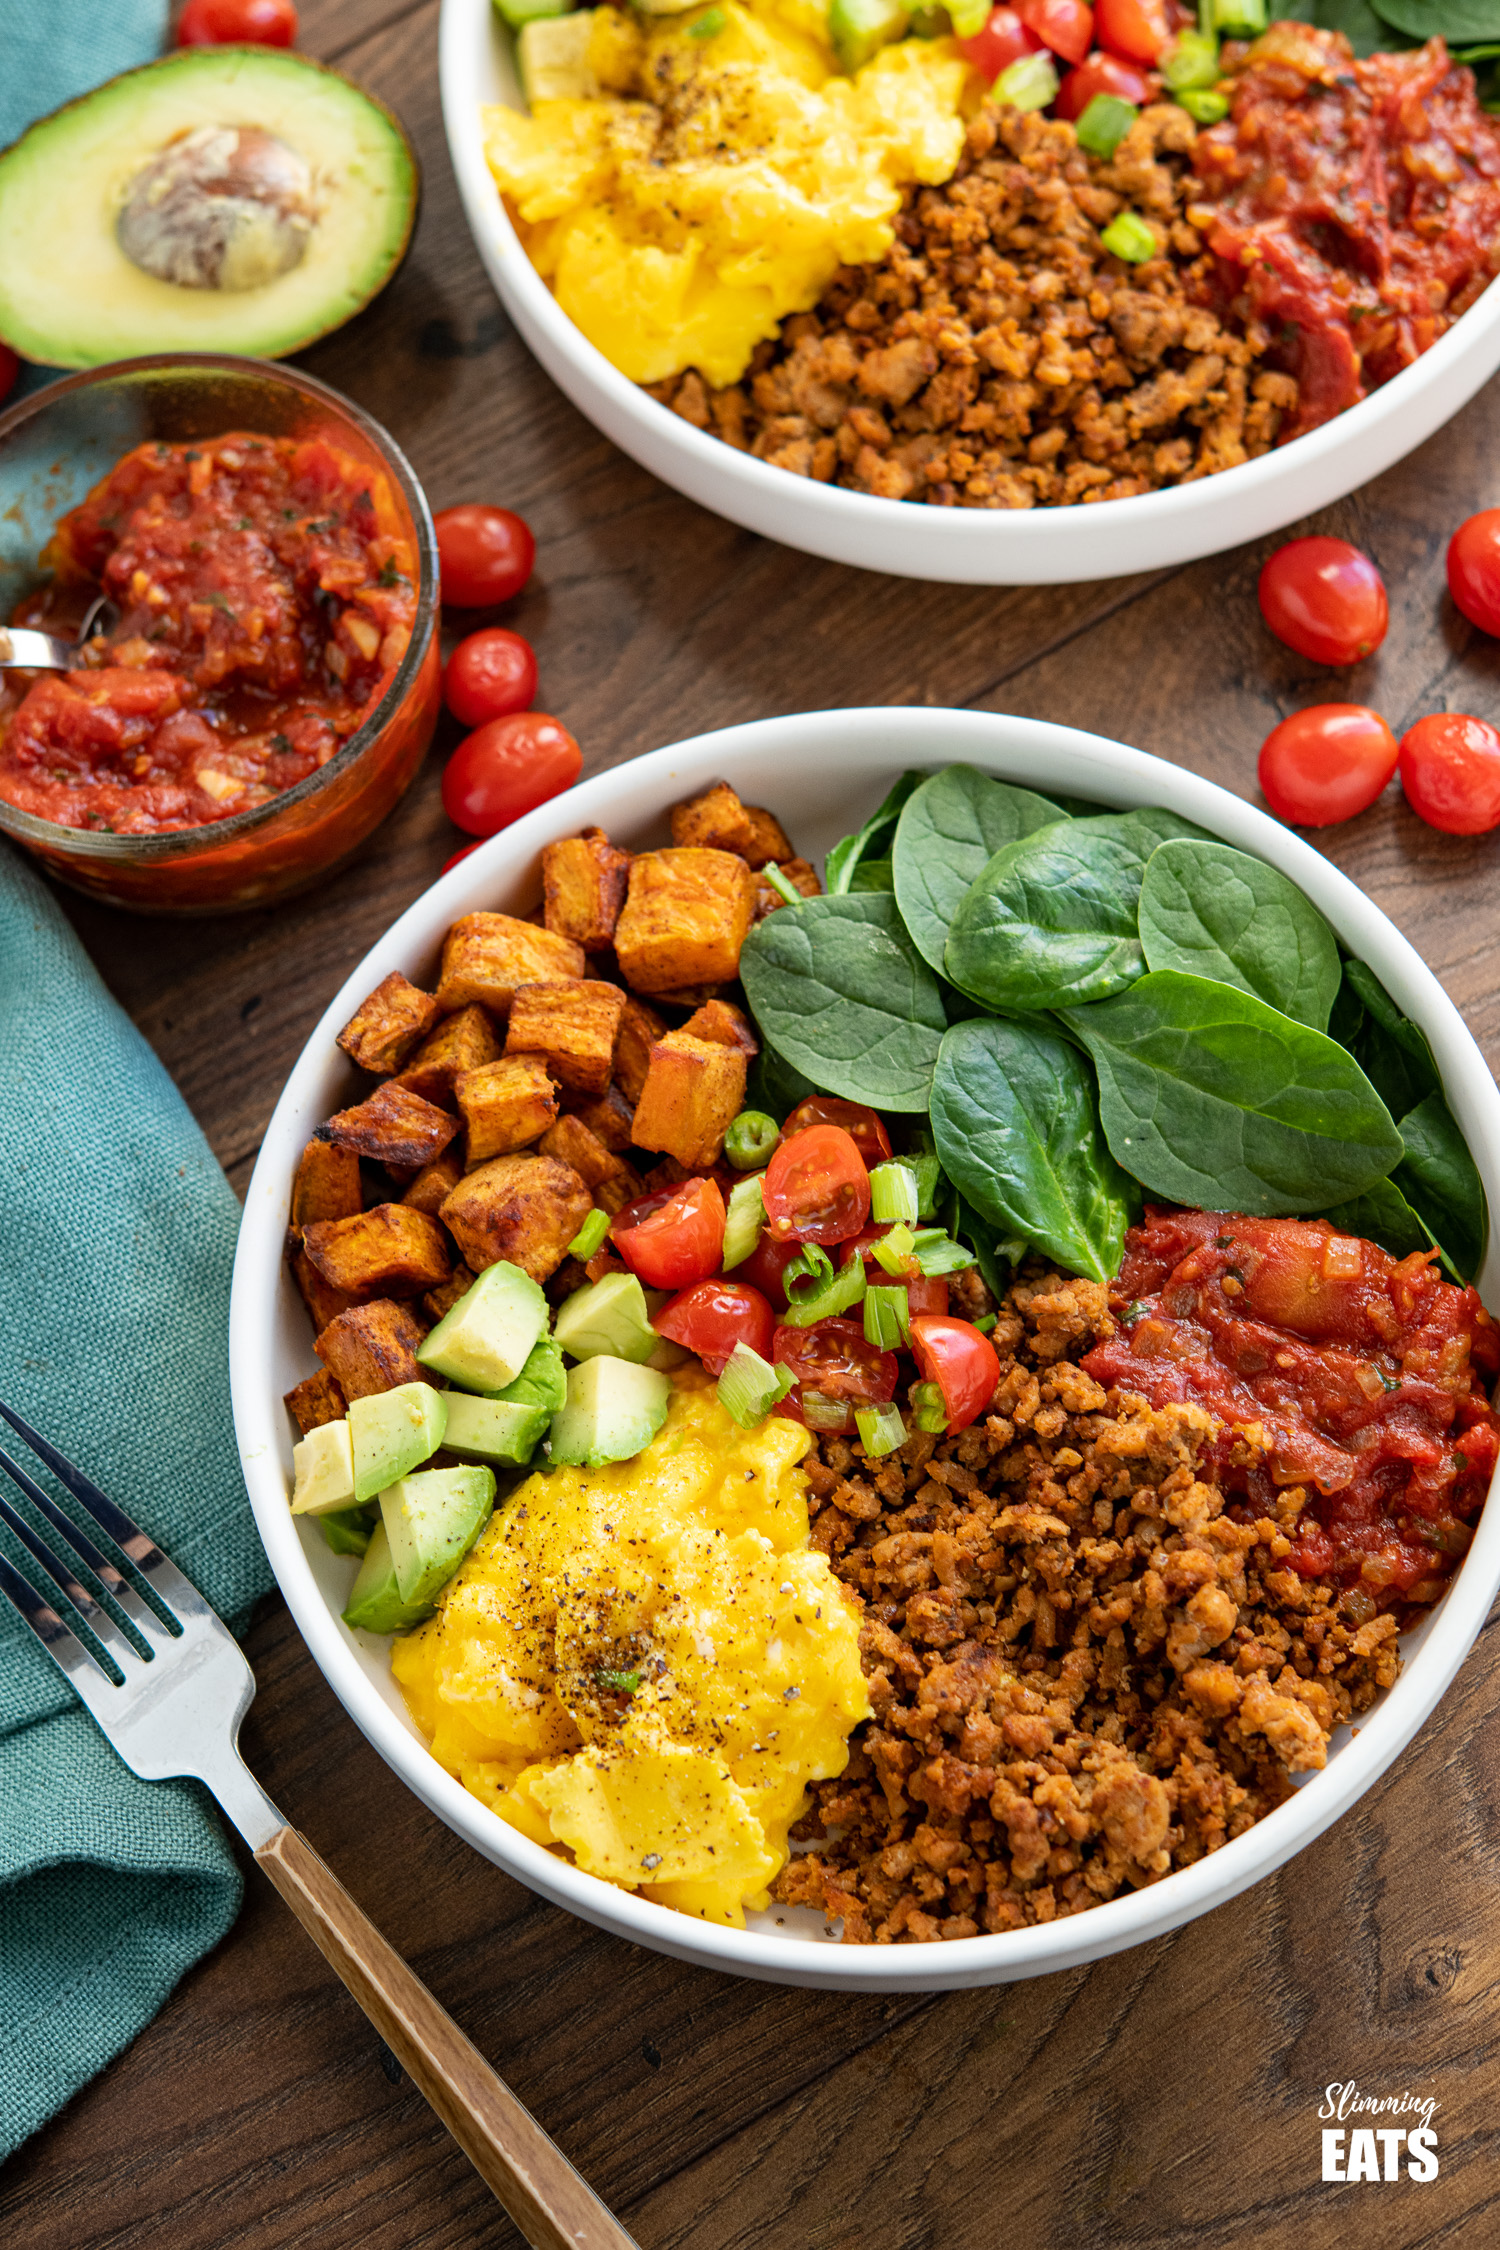 turkey taco meat, eggs, spinach, sweet potato, avocado, tomatoes in a bowl with additional bowl in background with scattered tomatoes and half an avocado